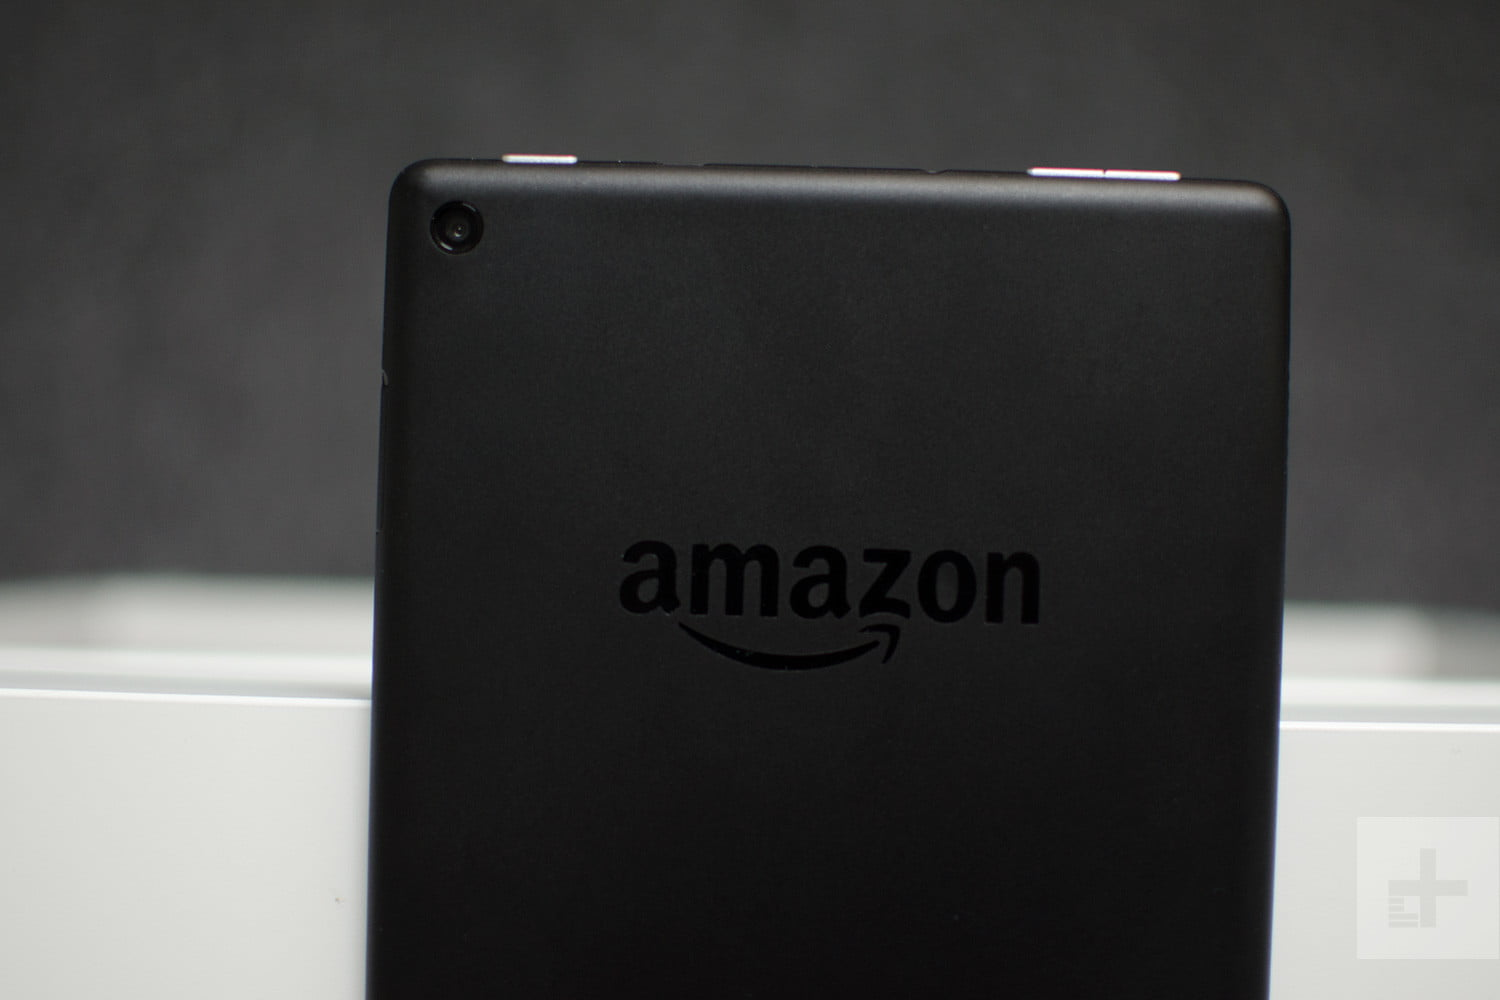 Amazon Fire HD 8 (2017) Tablet Review | Digital Trends